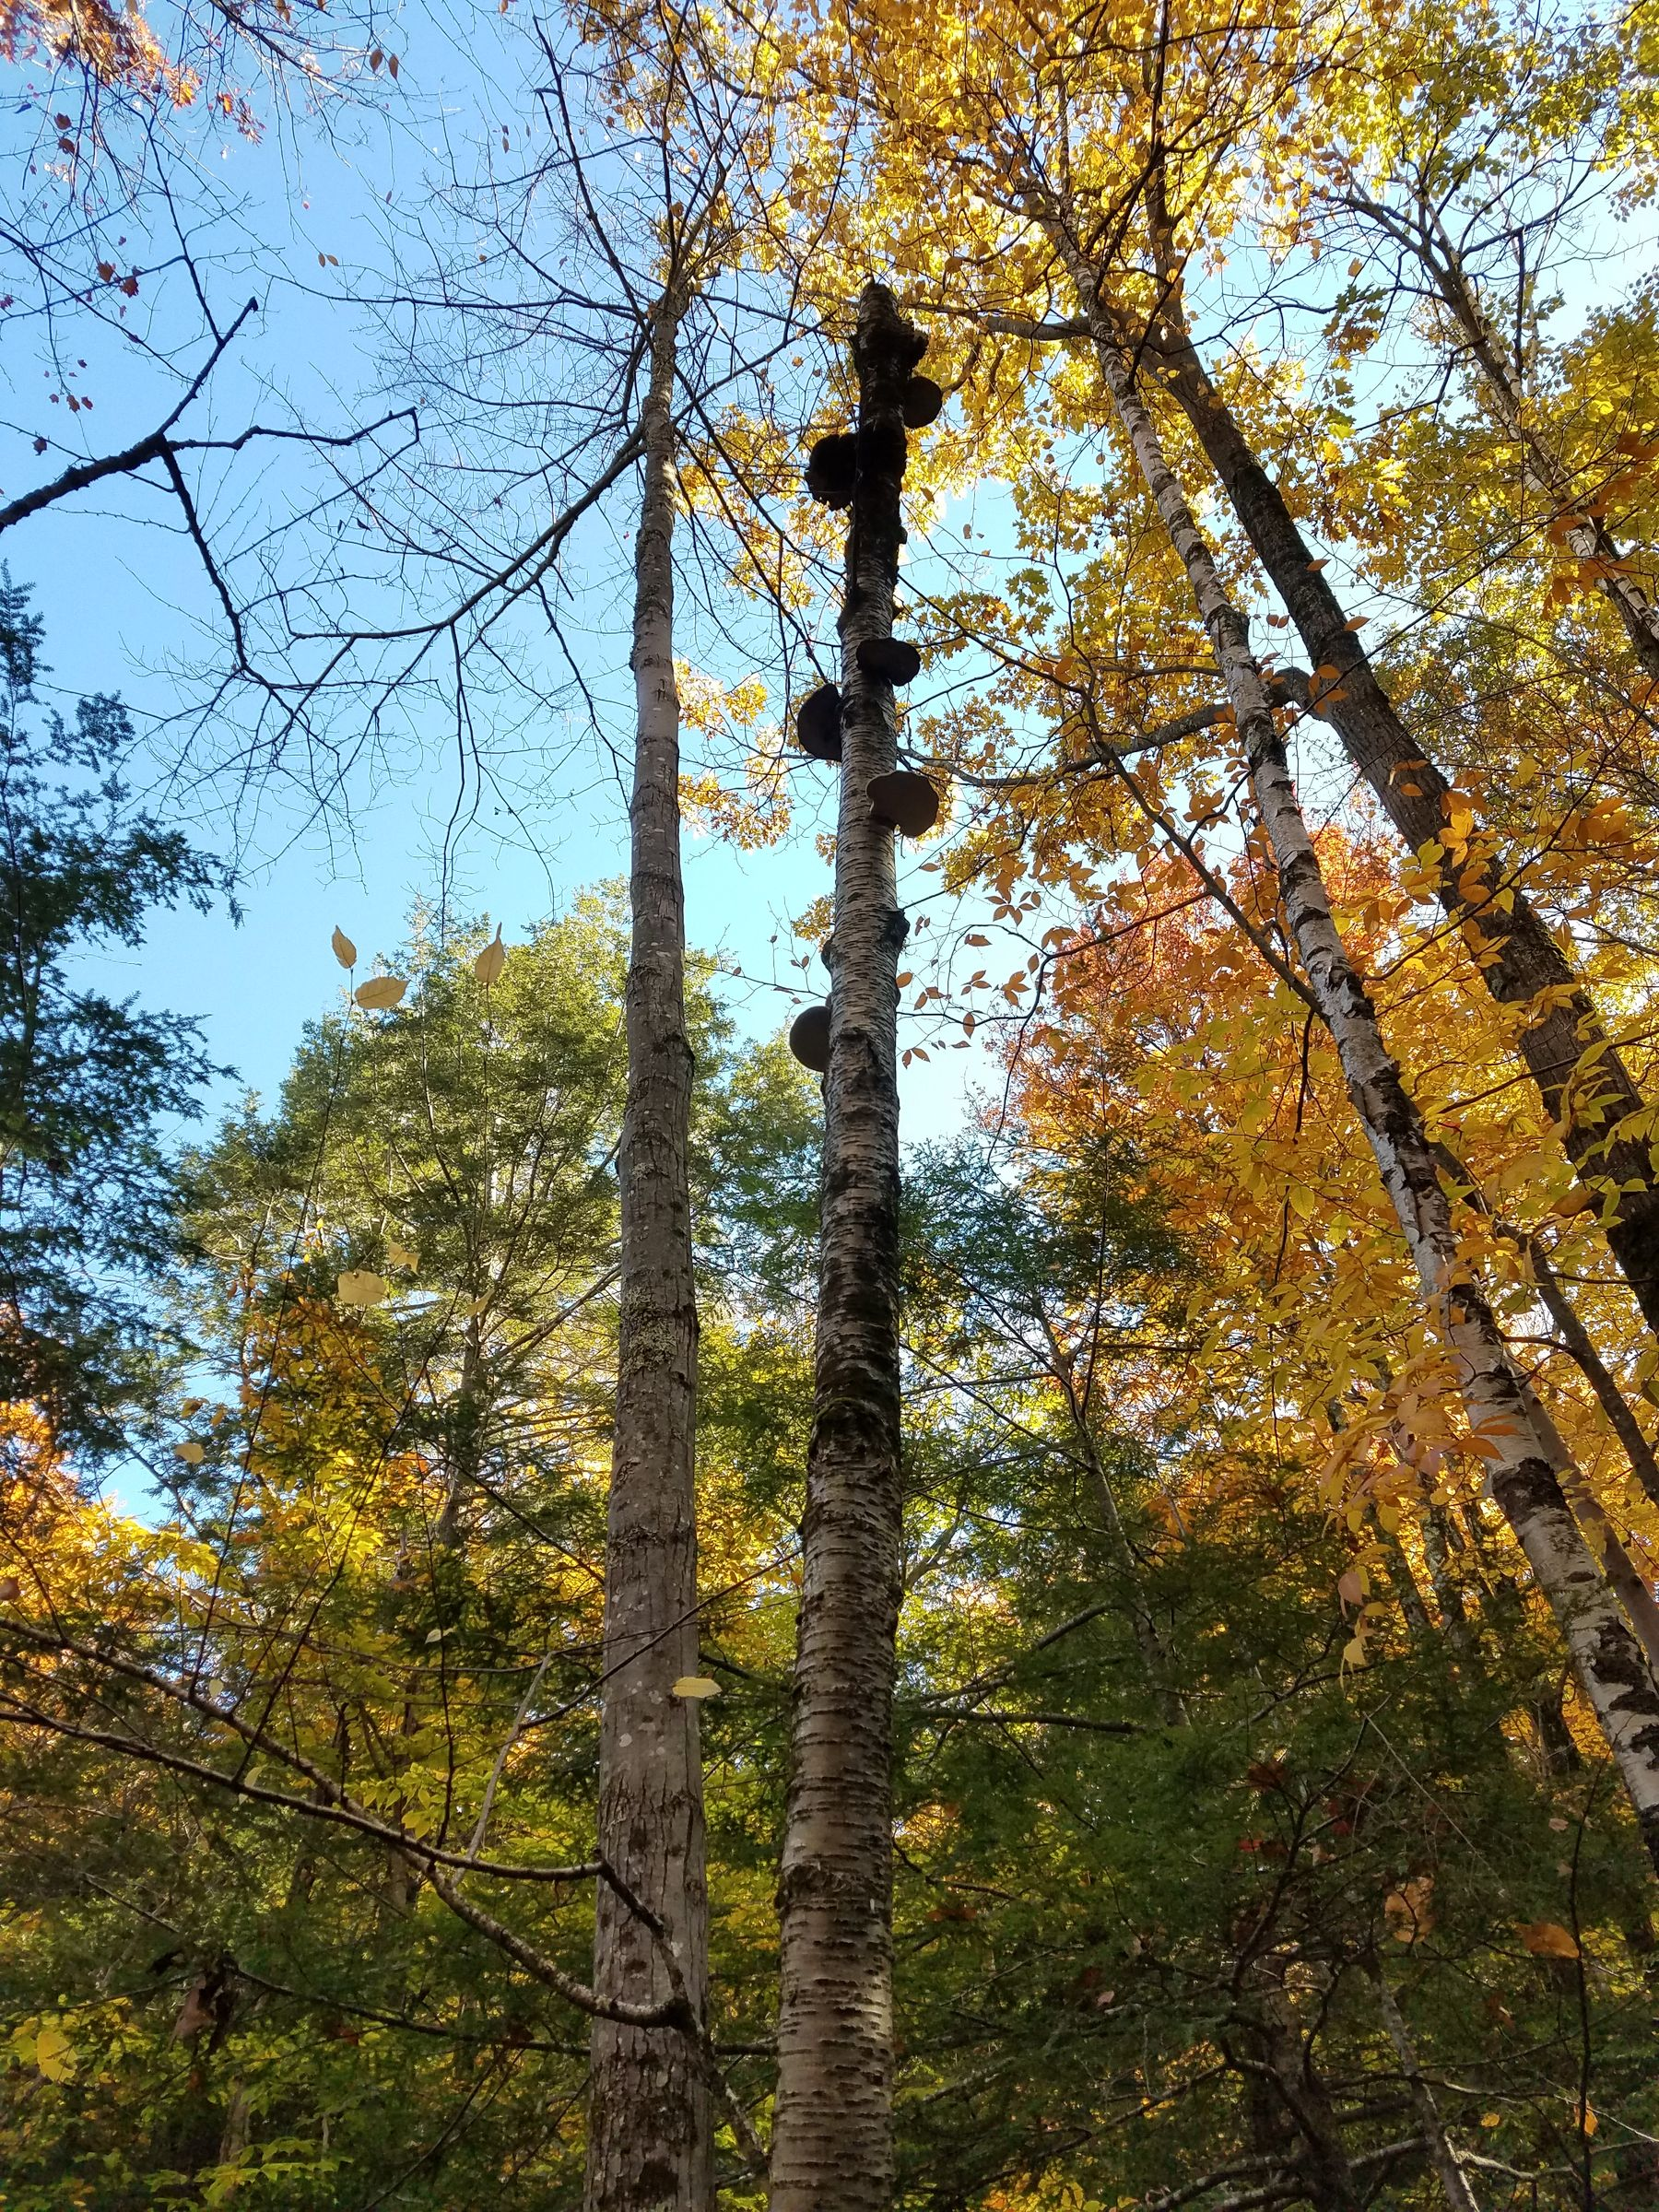 Photo of a dead birch tree trunk surrounded by live birches with orange fall foliage and other trees in the background which are still green. At the top of the tree trunk are over half a dozen birch polypores hanging off of it.